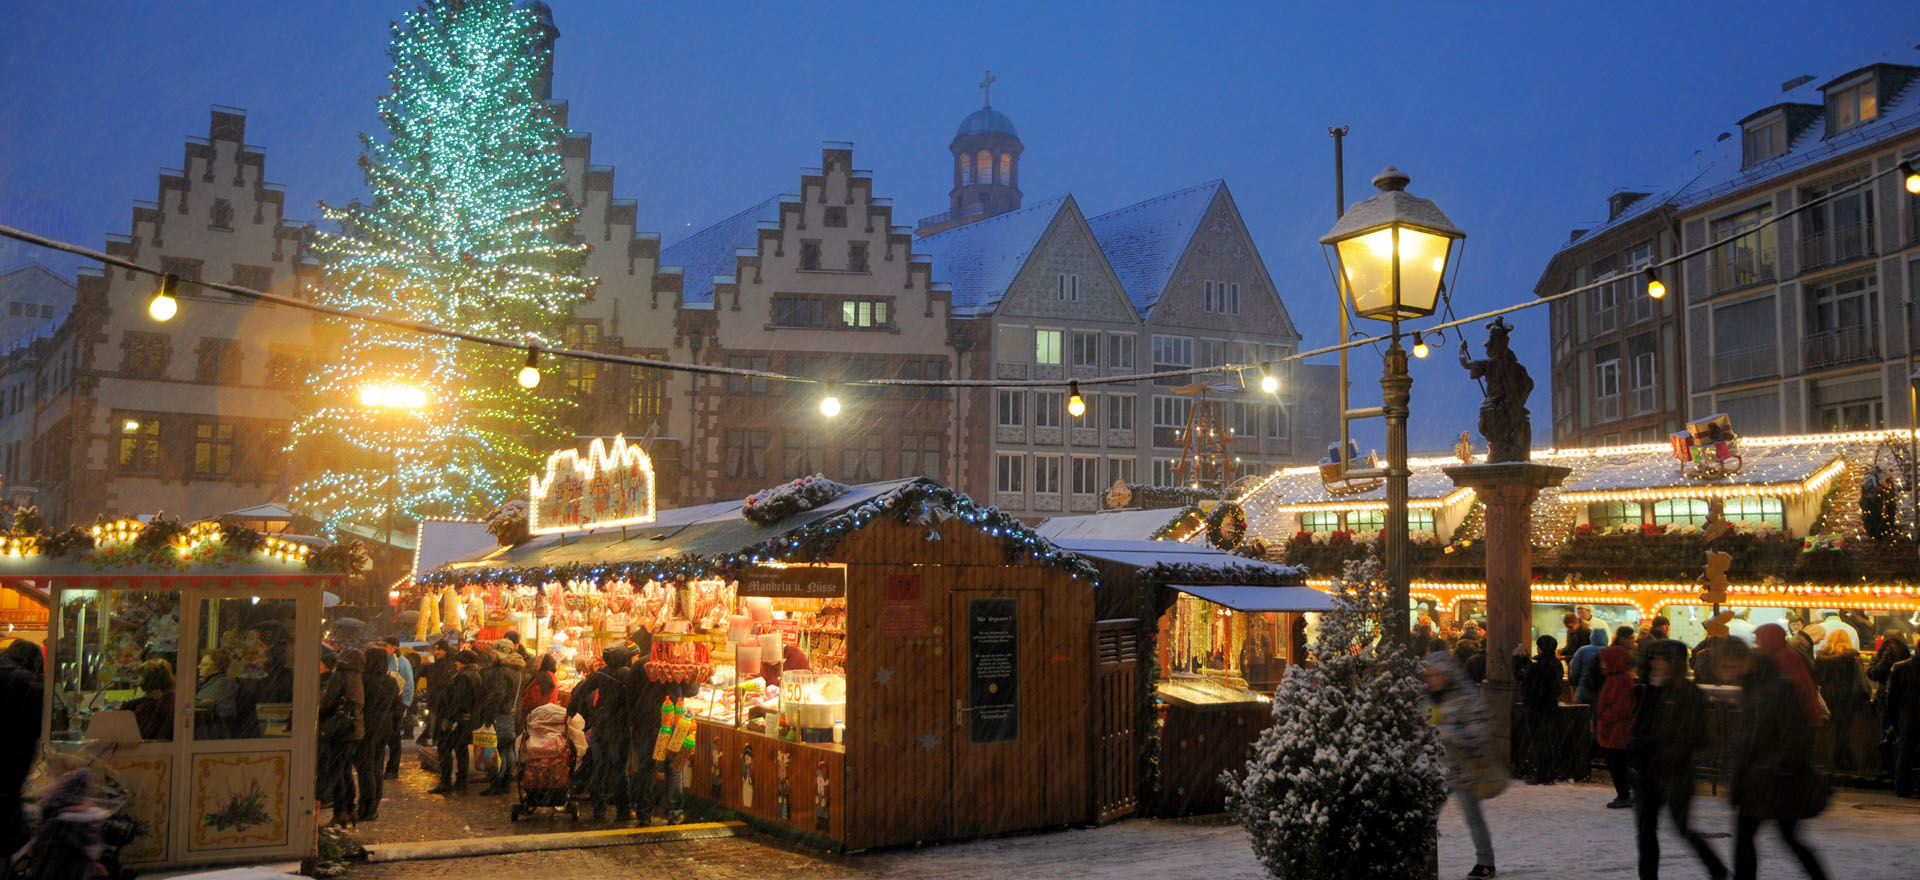 Market stalls covered with snow in German town